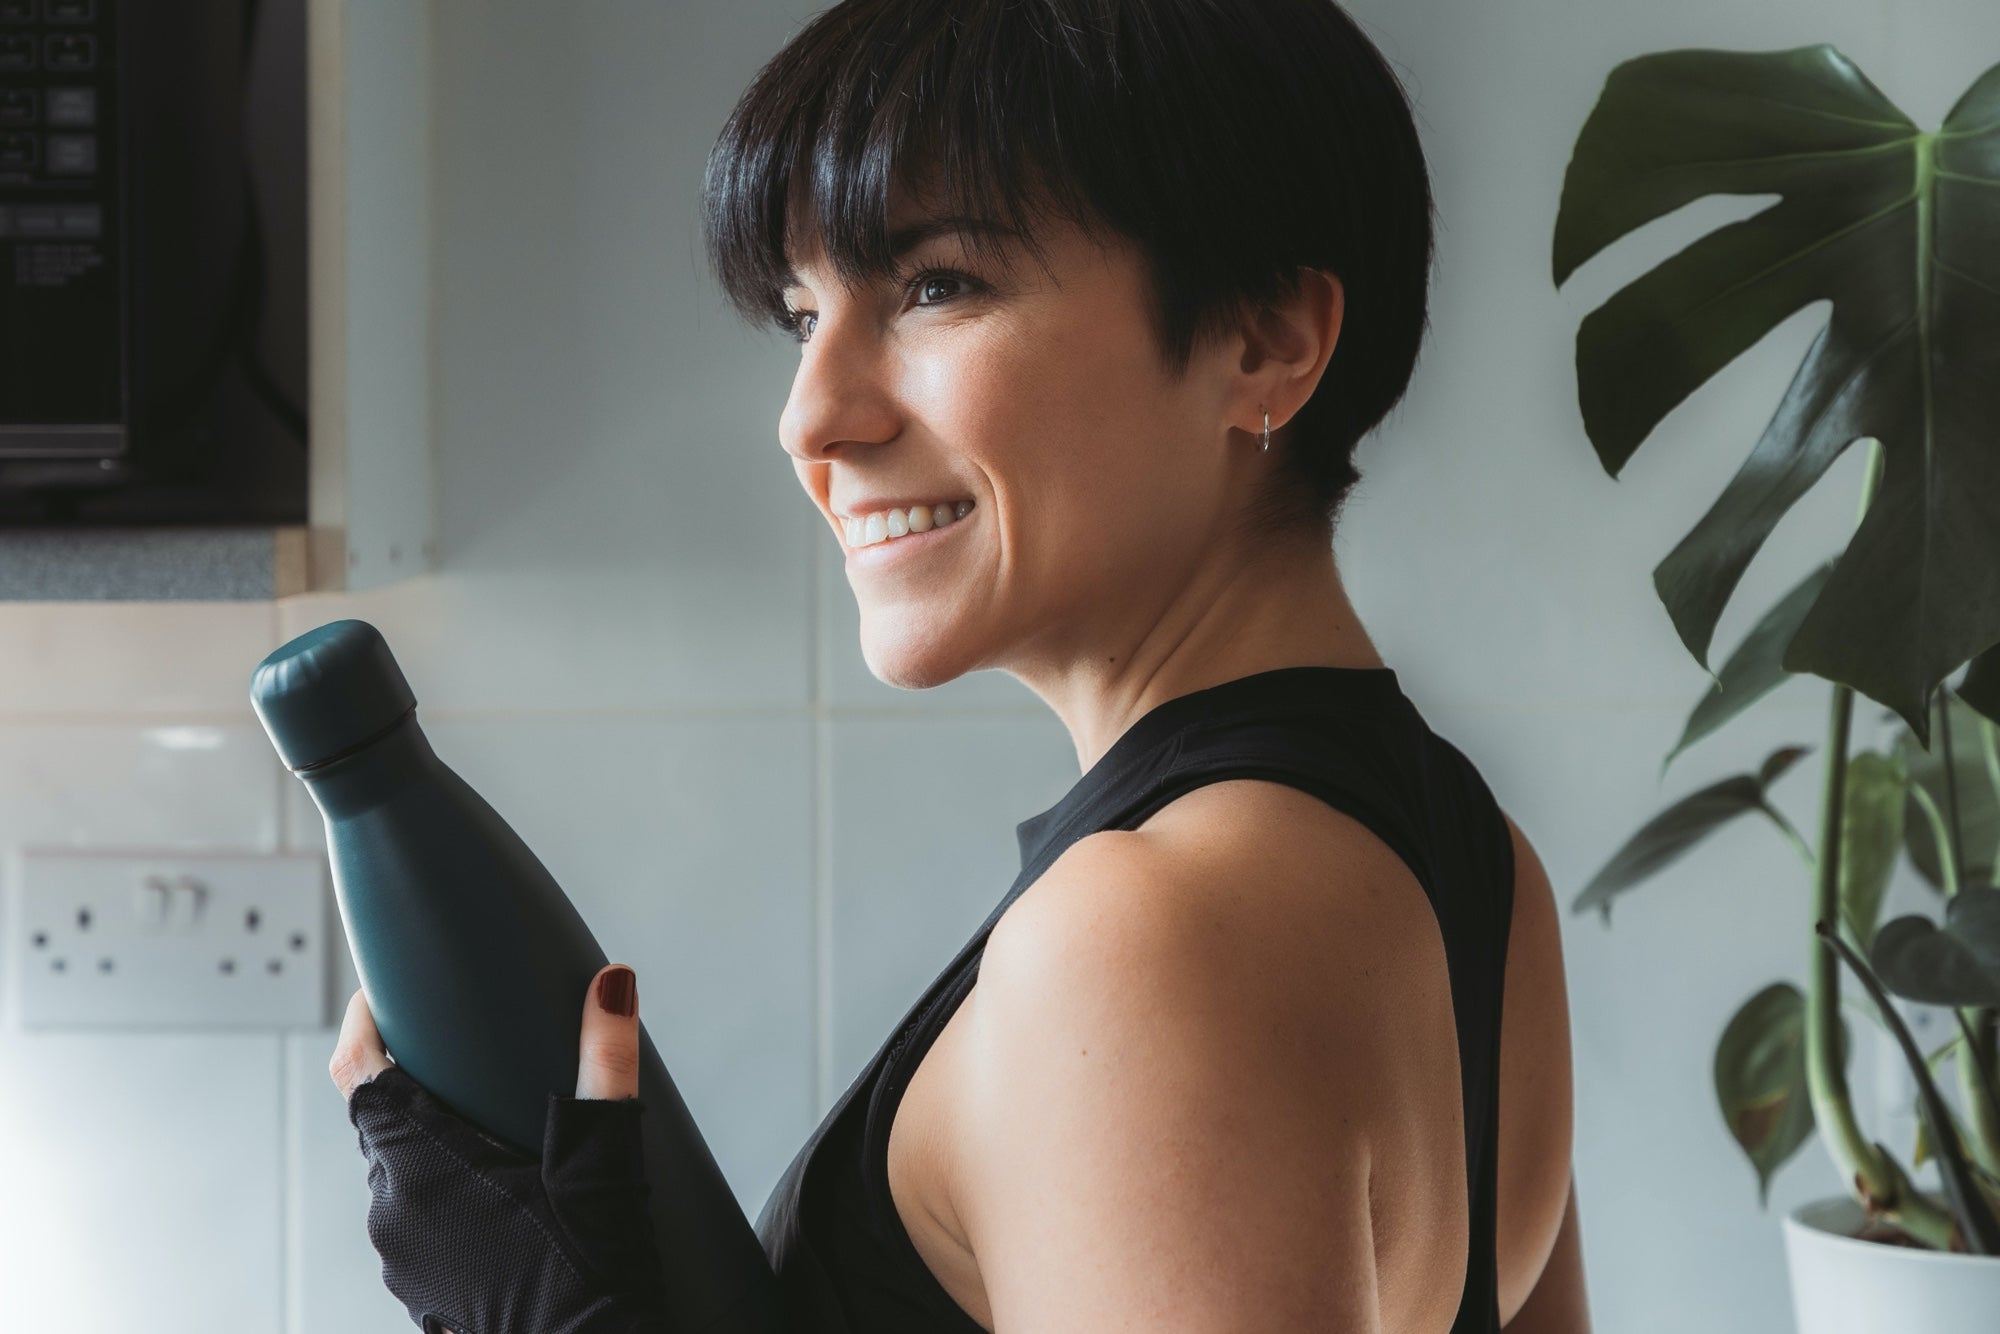 Woman holds a black water bottle